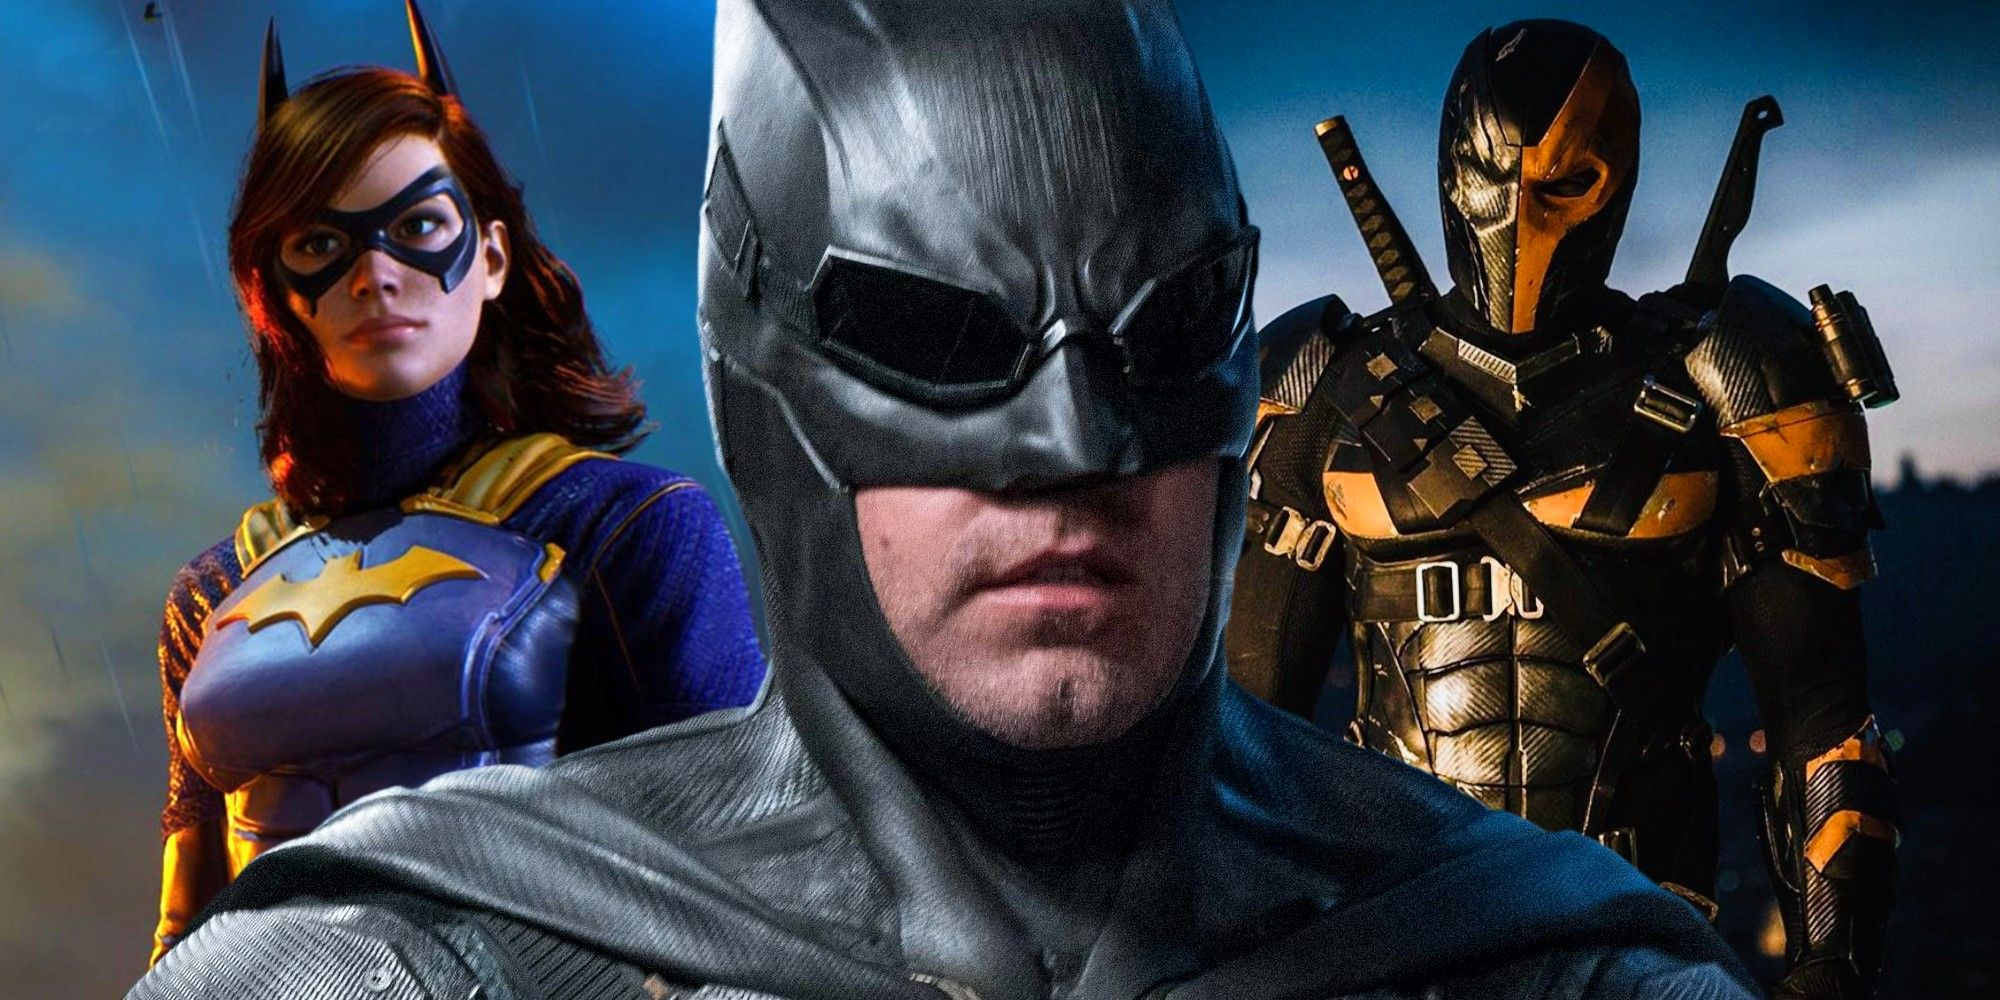 Batgirl vs Deathstroke Fight in Ben Affleck's Batman – Jioforme